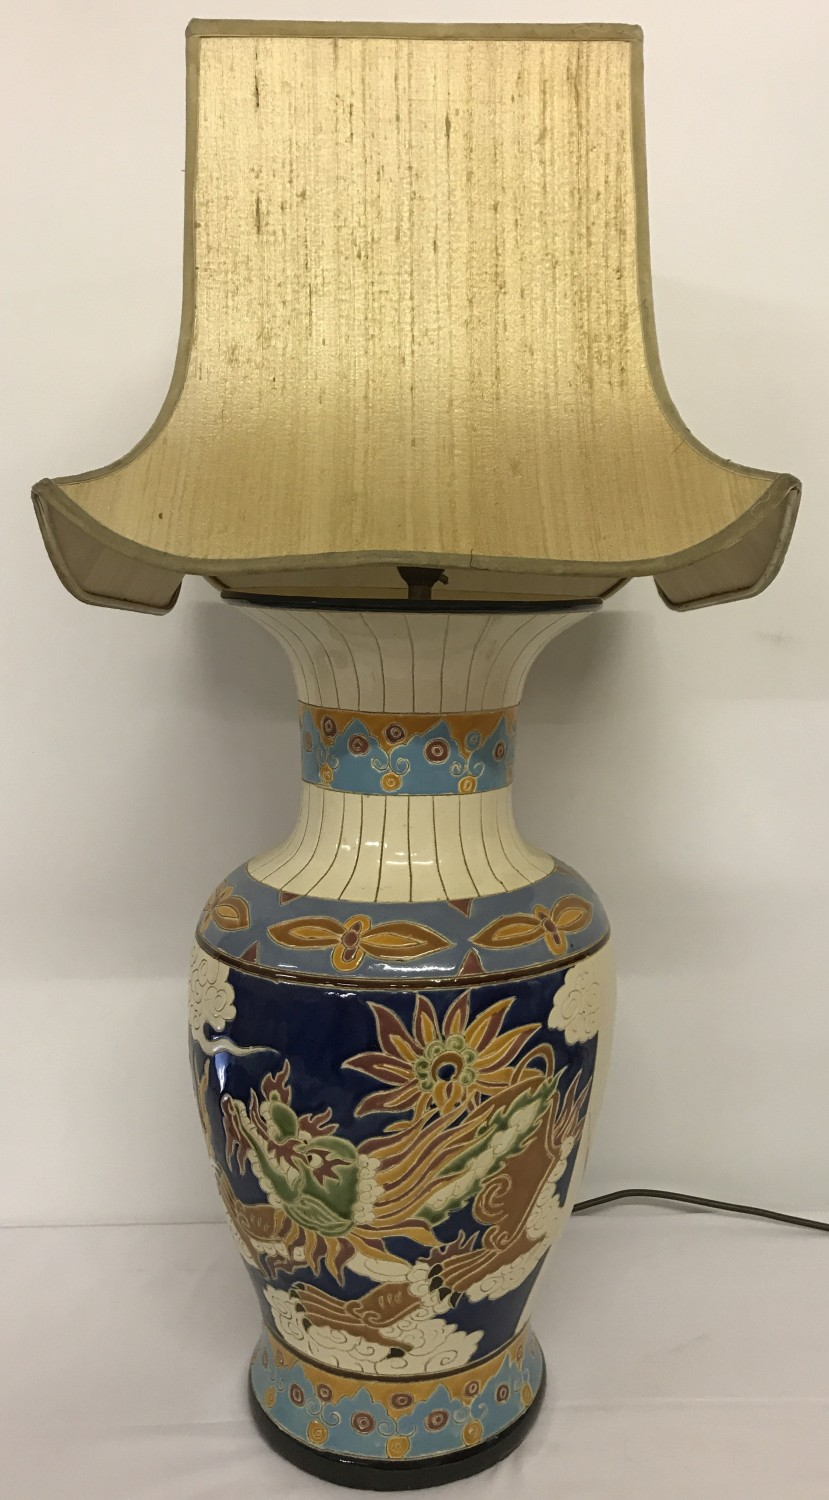 A large Chinese ceramic urn shaped table lamp with colourful dragon panel design.